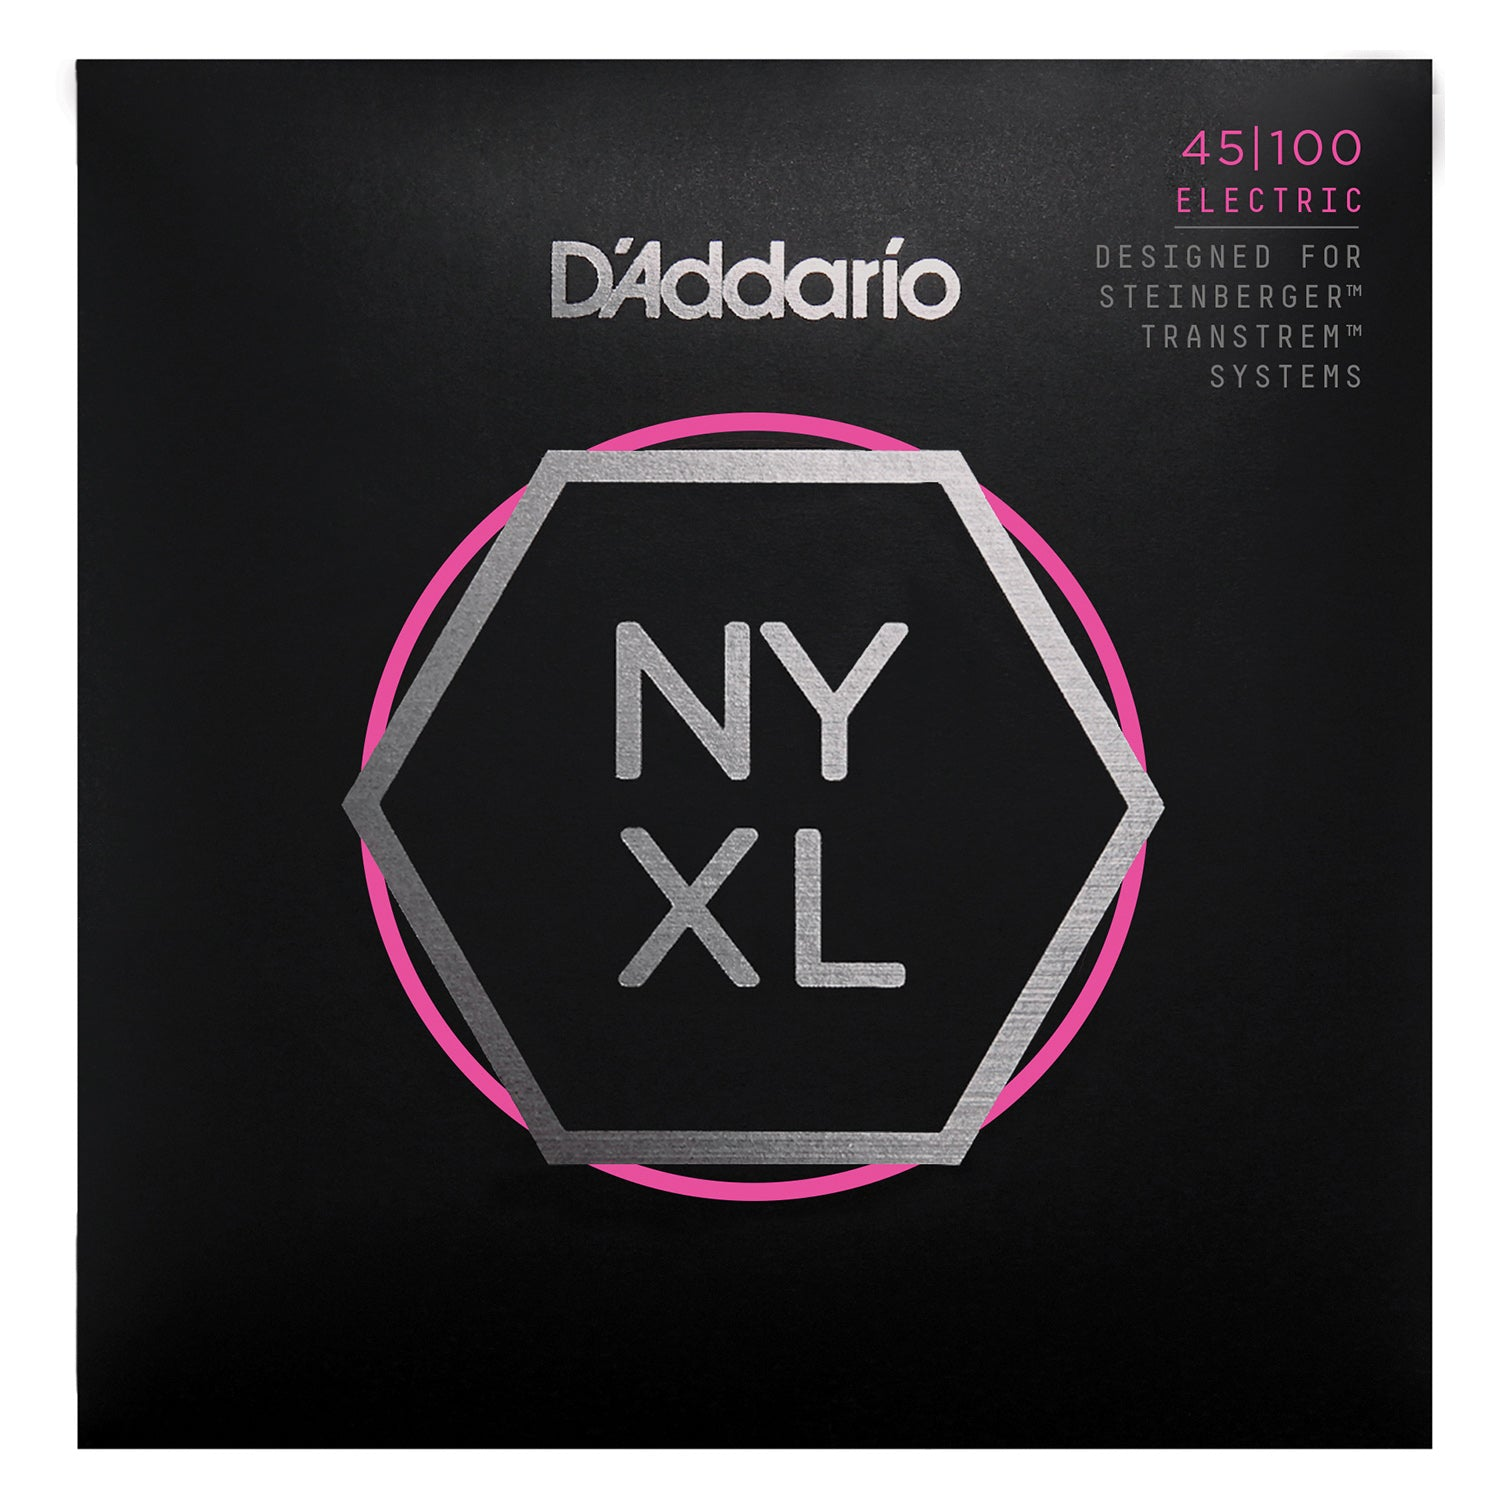 D'Addario NYXLS45100 Nickel Wound Bass Guitar Strings, Regular Light, 45-100, Double Ball End, Long Scale